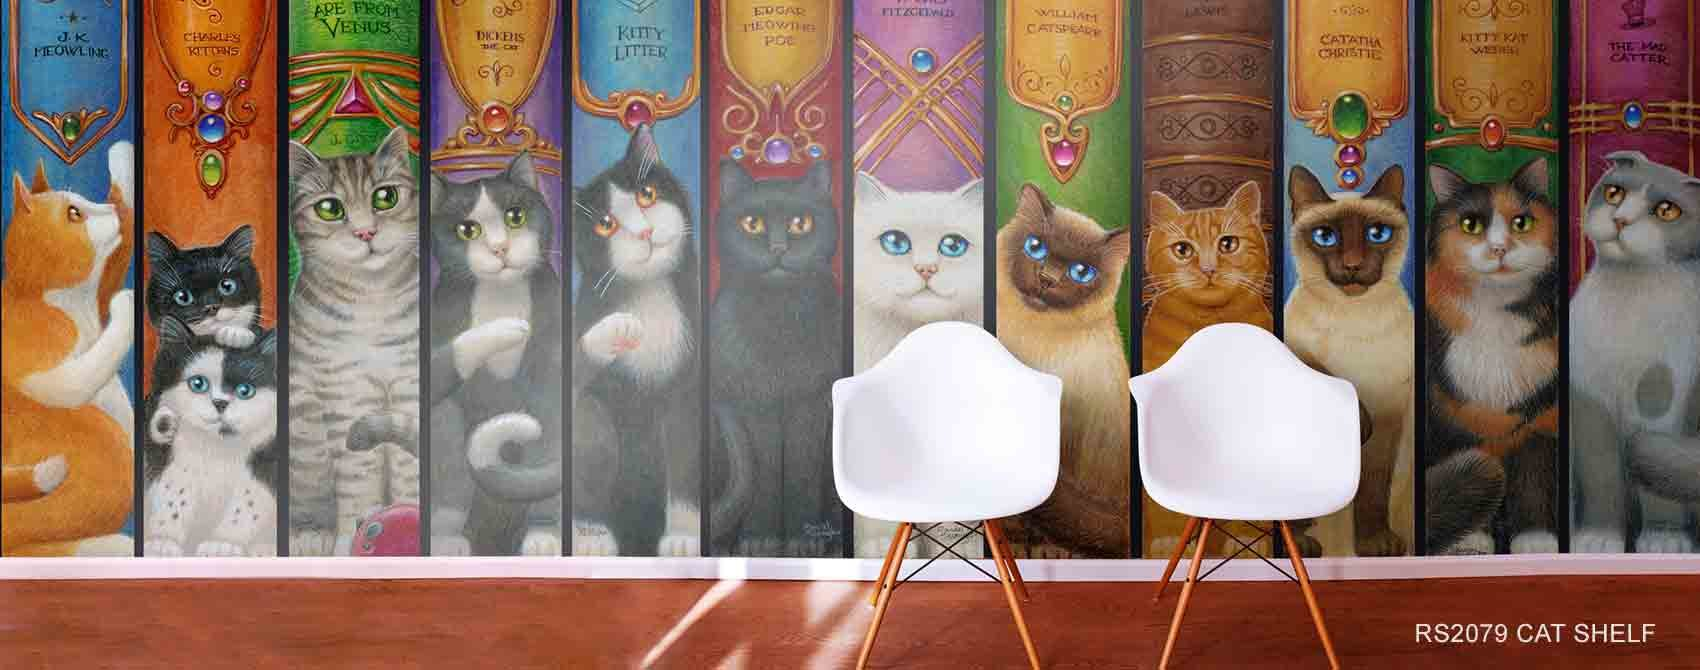 Cat Shelf Wall Mural